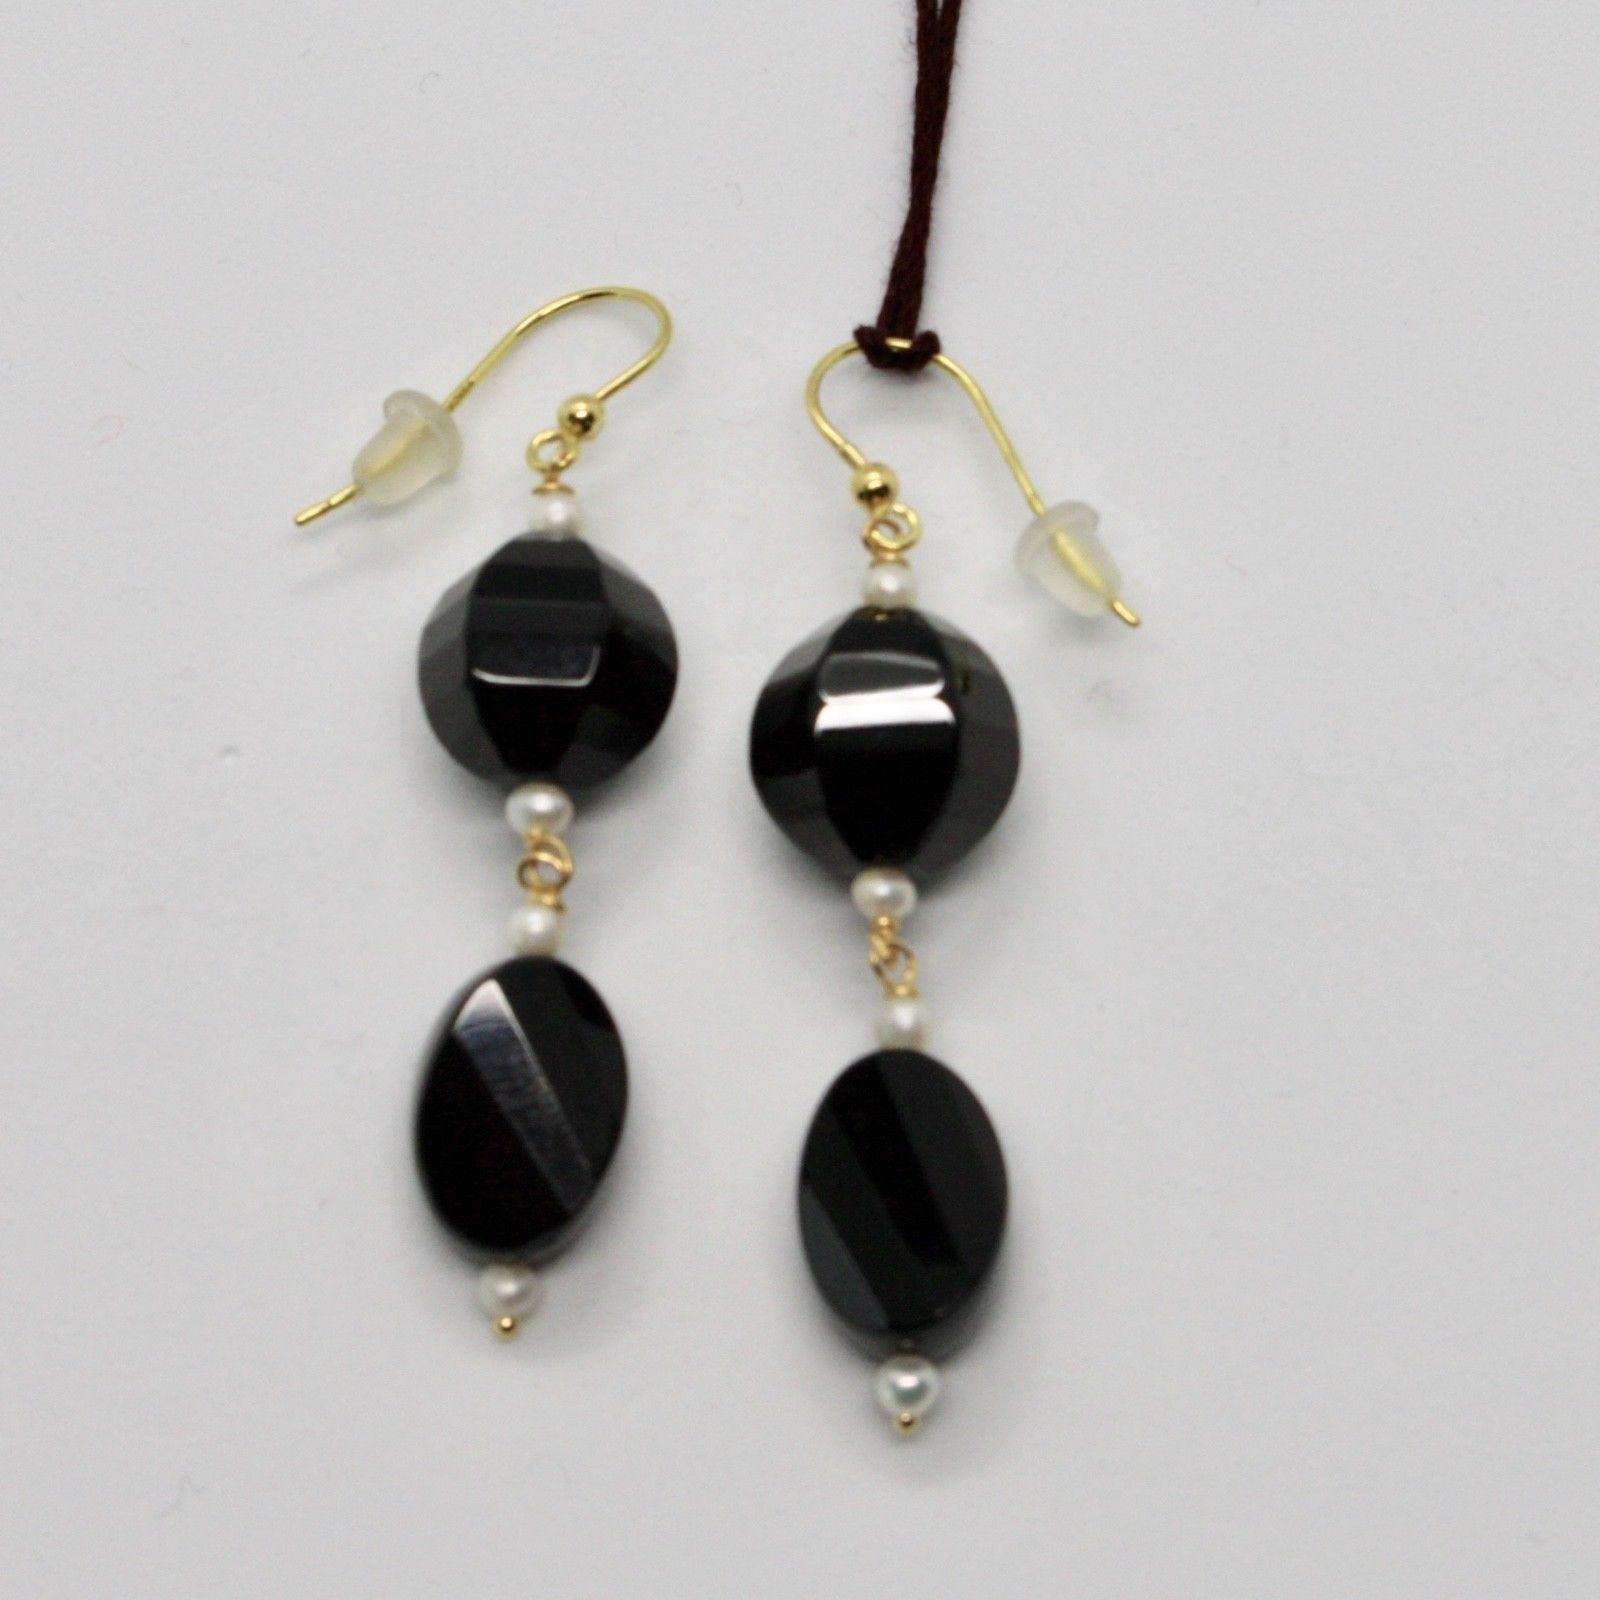 YELLOW GOLD EARRINGS 18K 750 ONYX BLACK NATURAL MINI PEARLS OF WATER DOLCE